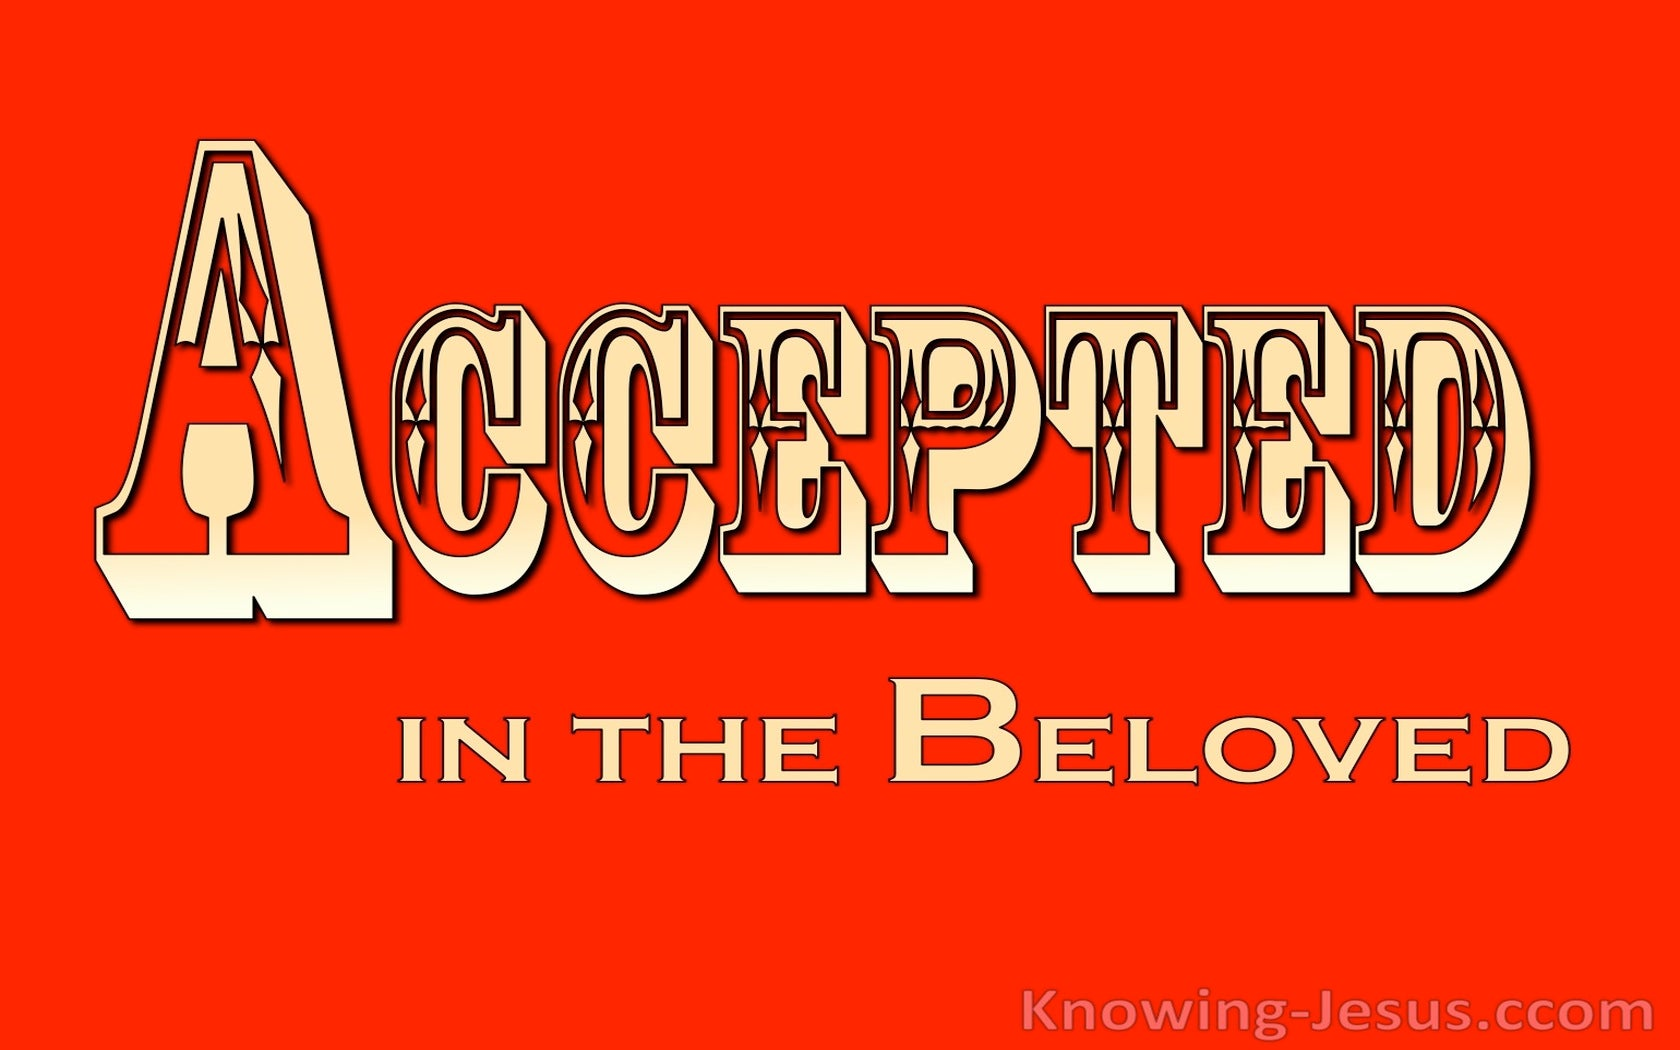 Ephesians 1:6 Accepted in the Beloved (devotional)12:11 (gold)